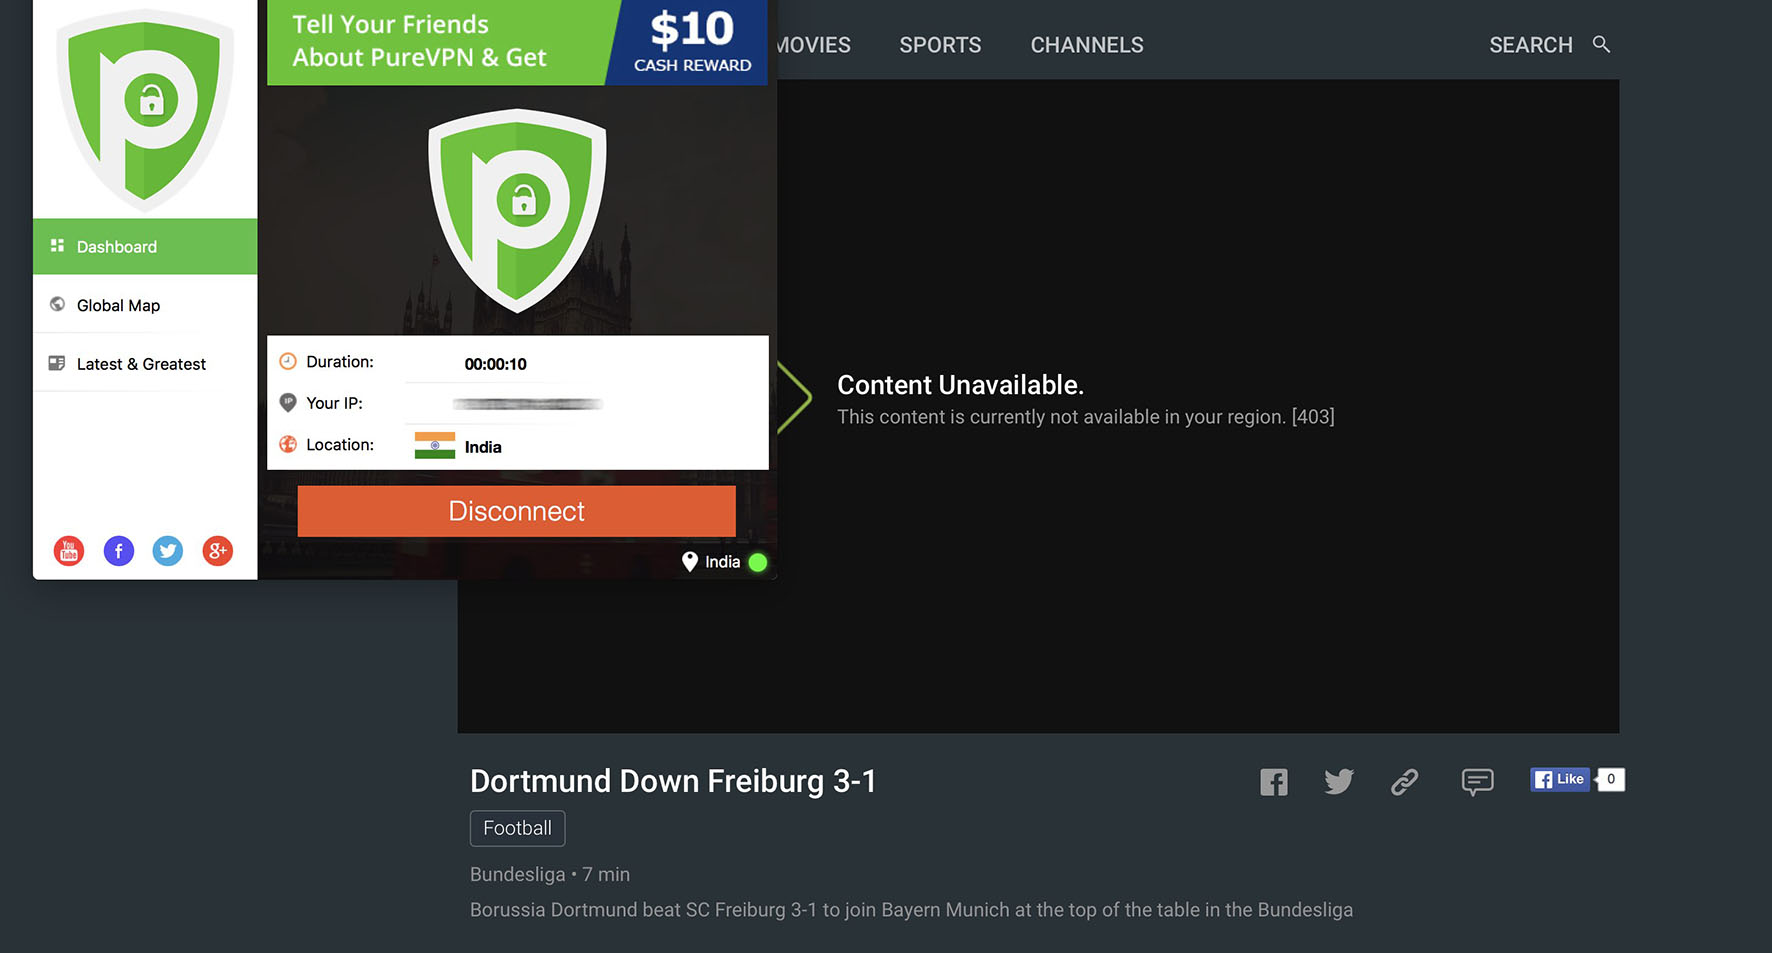 How to Watch Bundesliga Live stream on Hotstar outside India